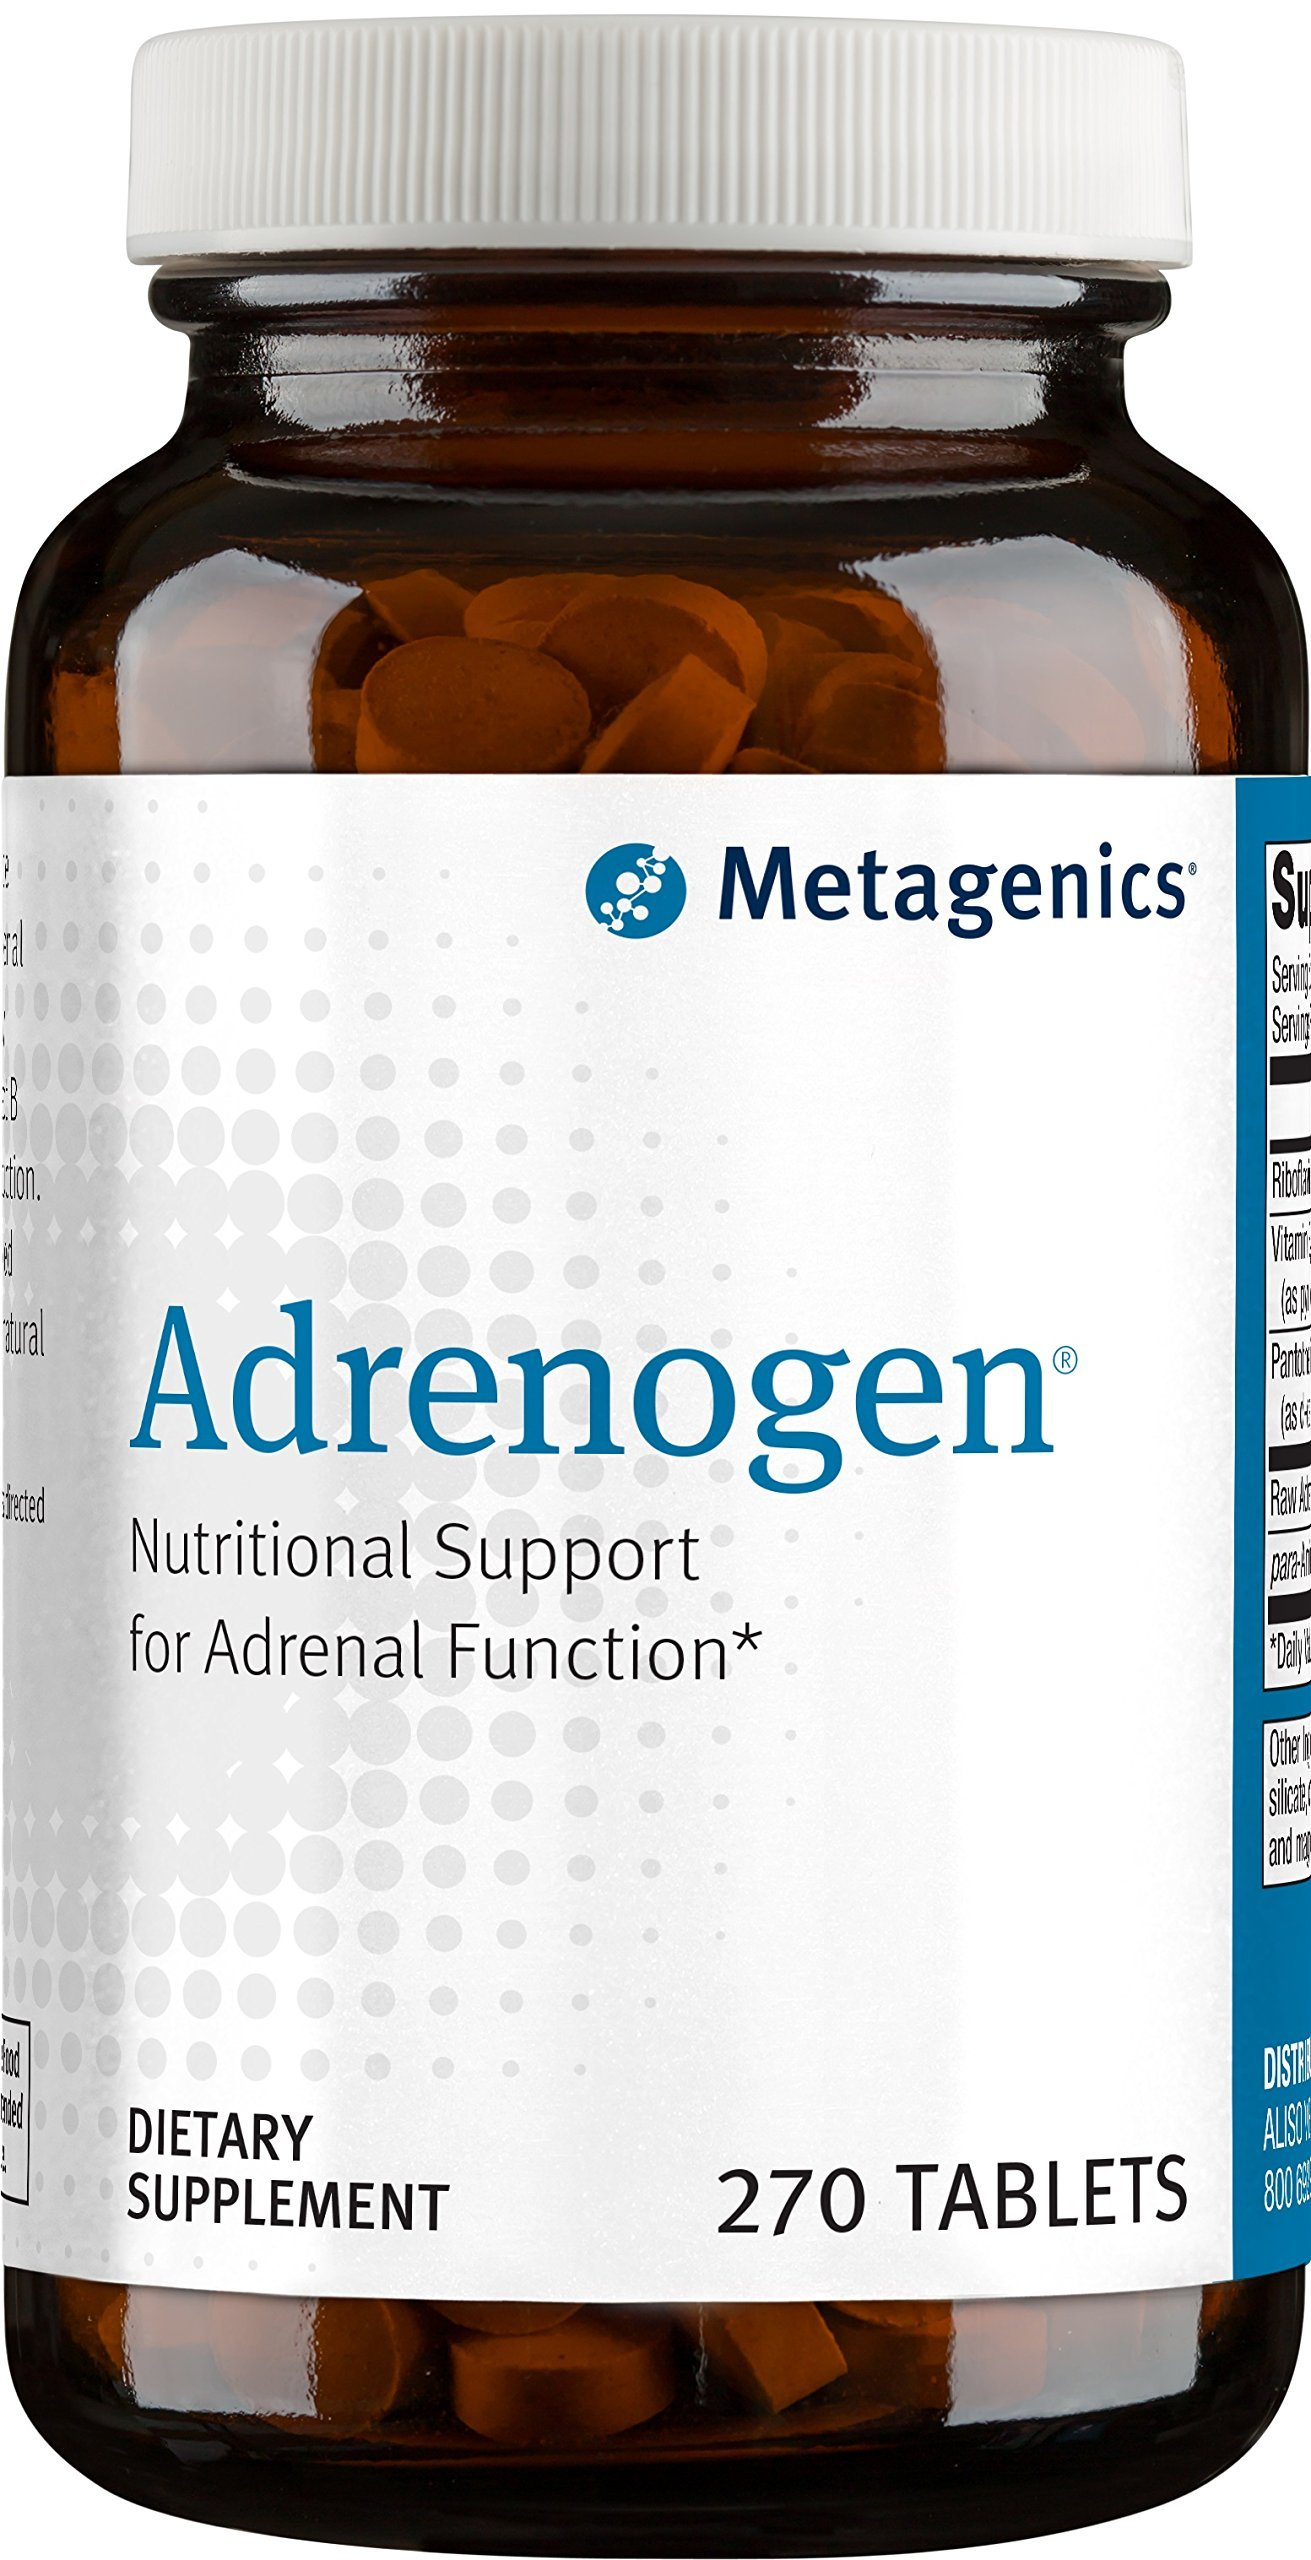 Metagenics Adrenogen Tablets, 270 Count